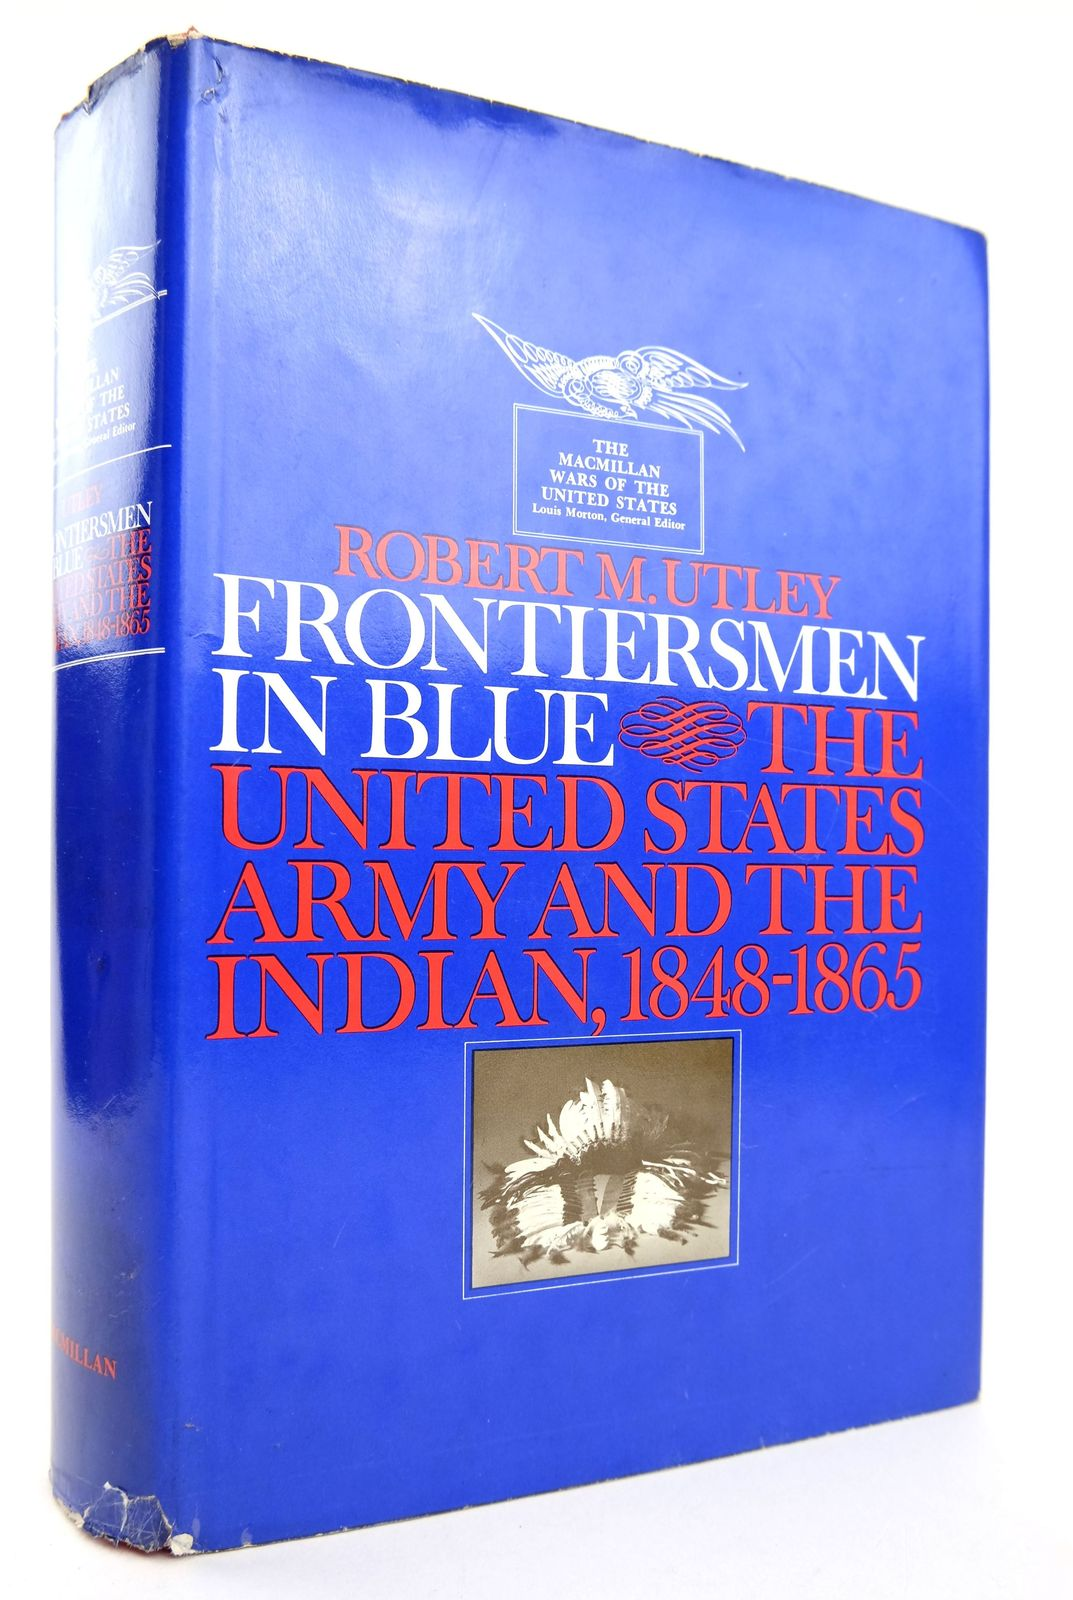 Photo of FRONTIERSMEN IN BLUE: THE UNITED STATES ARMY AND THE INDIAN 1848-1865 written by Utley, Robert M. published by The Macmillan Company (STOCK CODE: 1818945)  for sale by Stella & Rose's Books